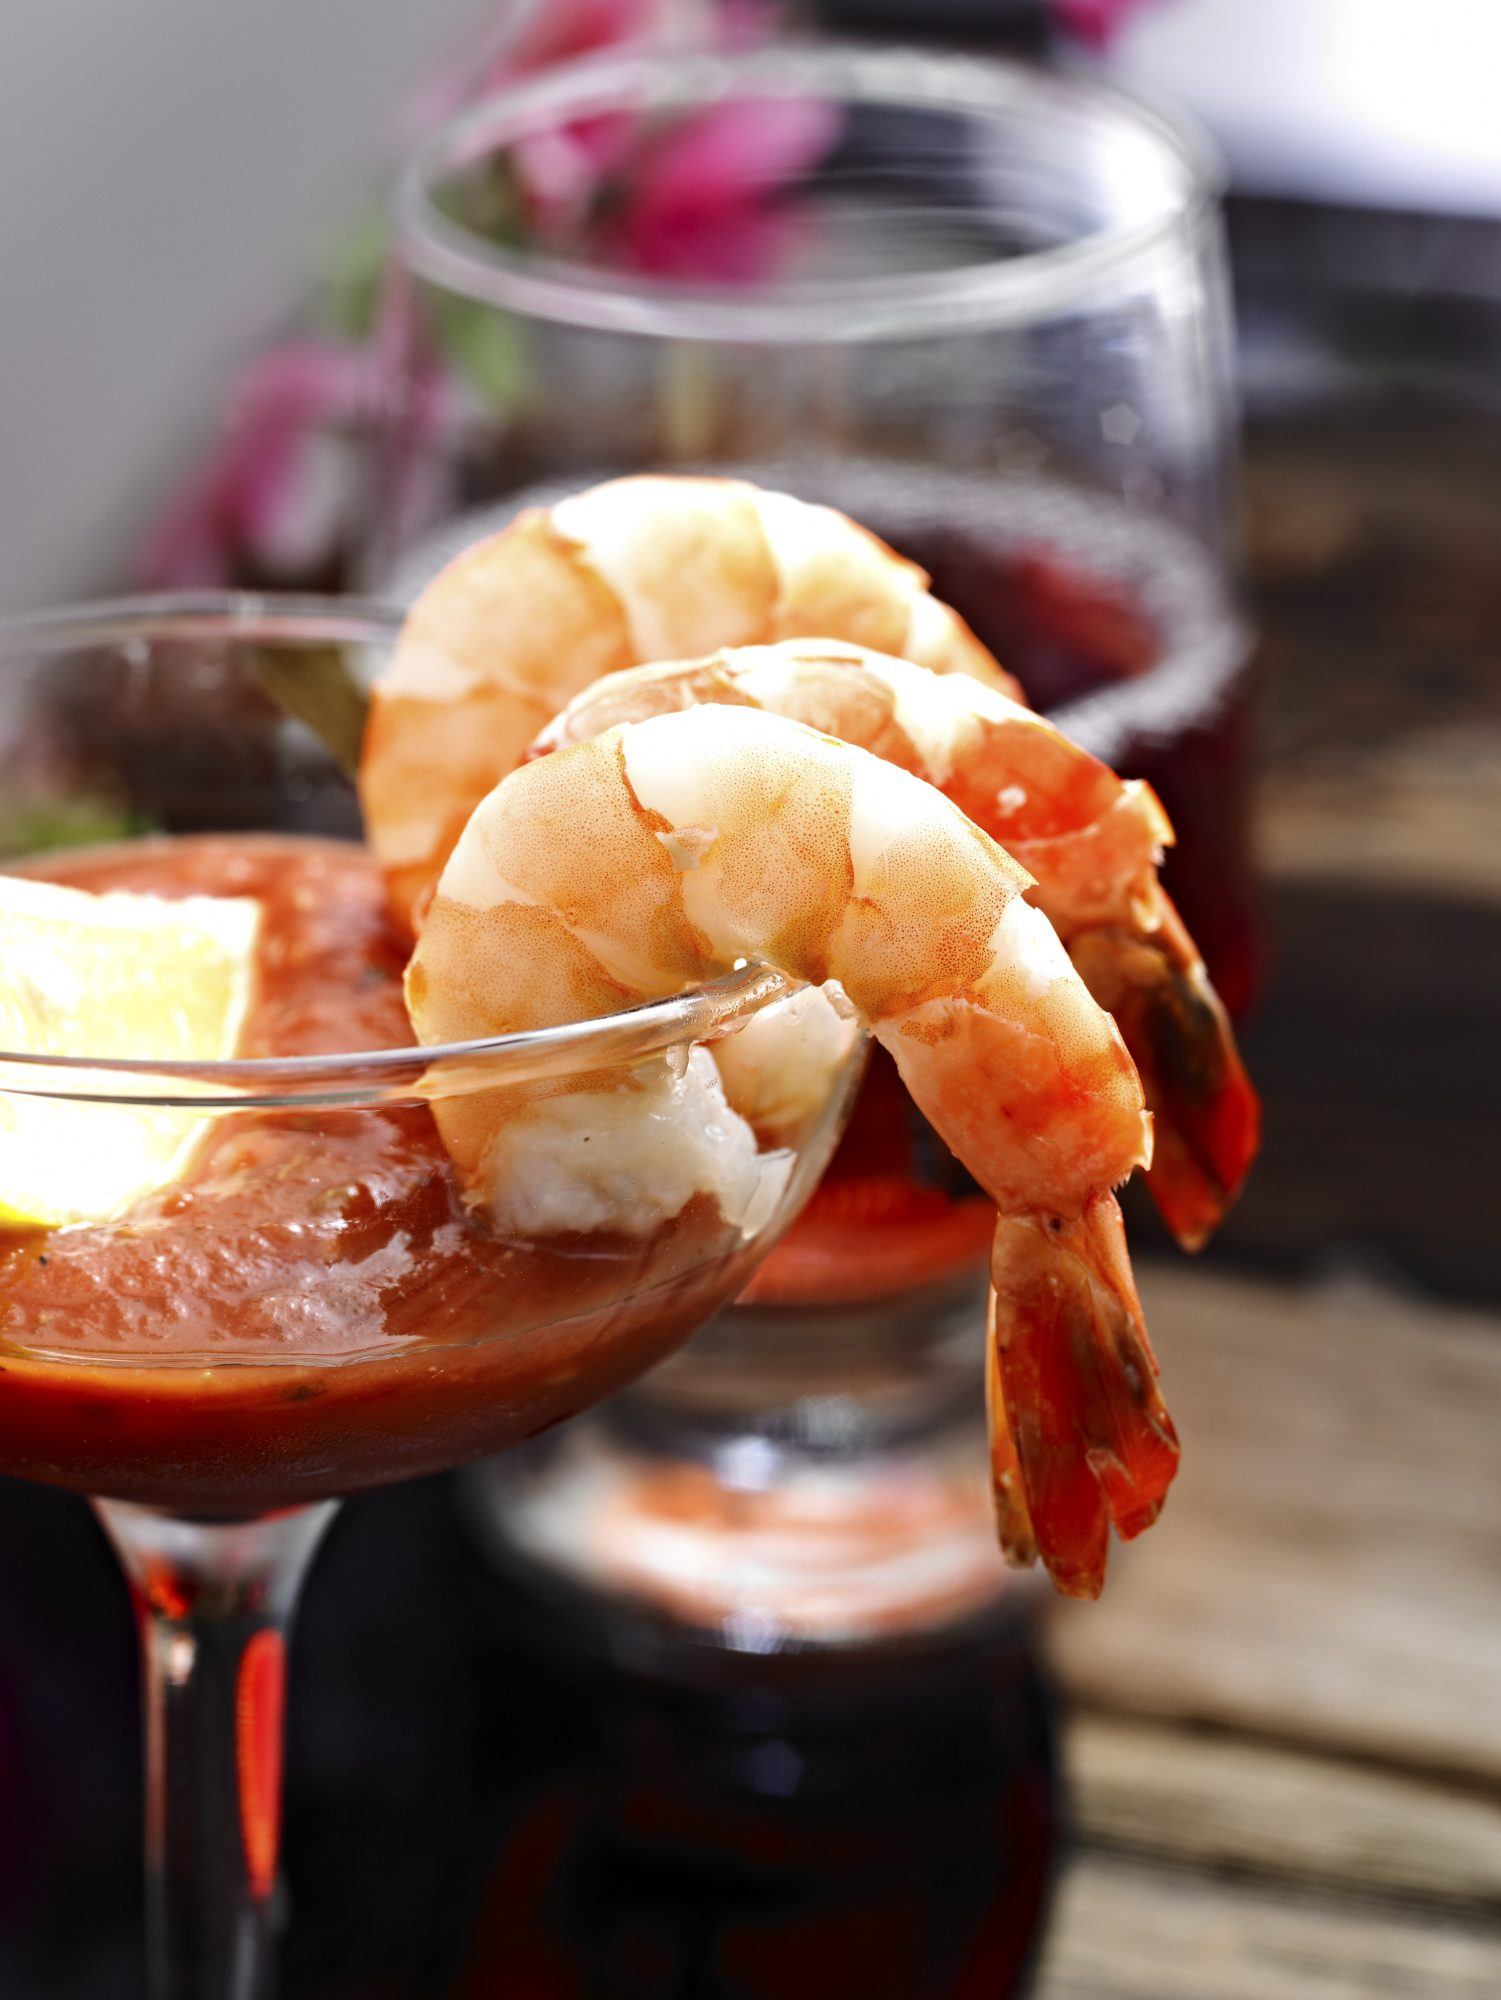 Best: Shrimp cocktail